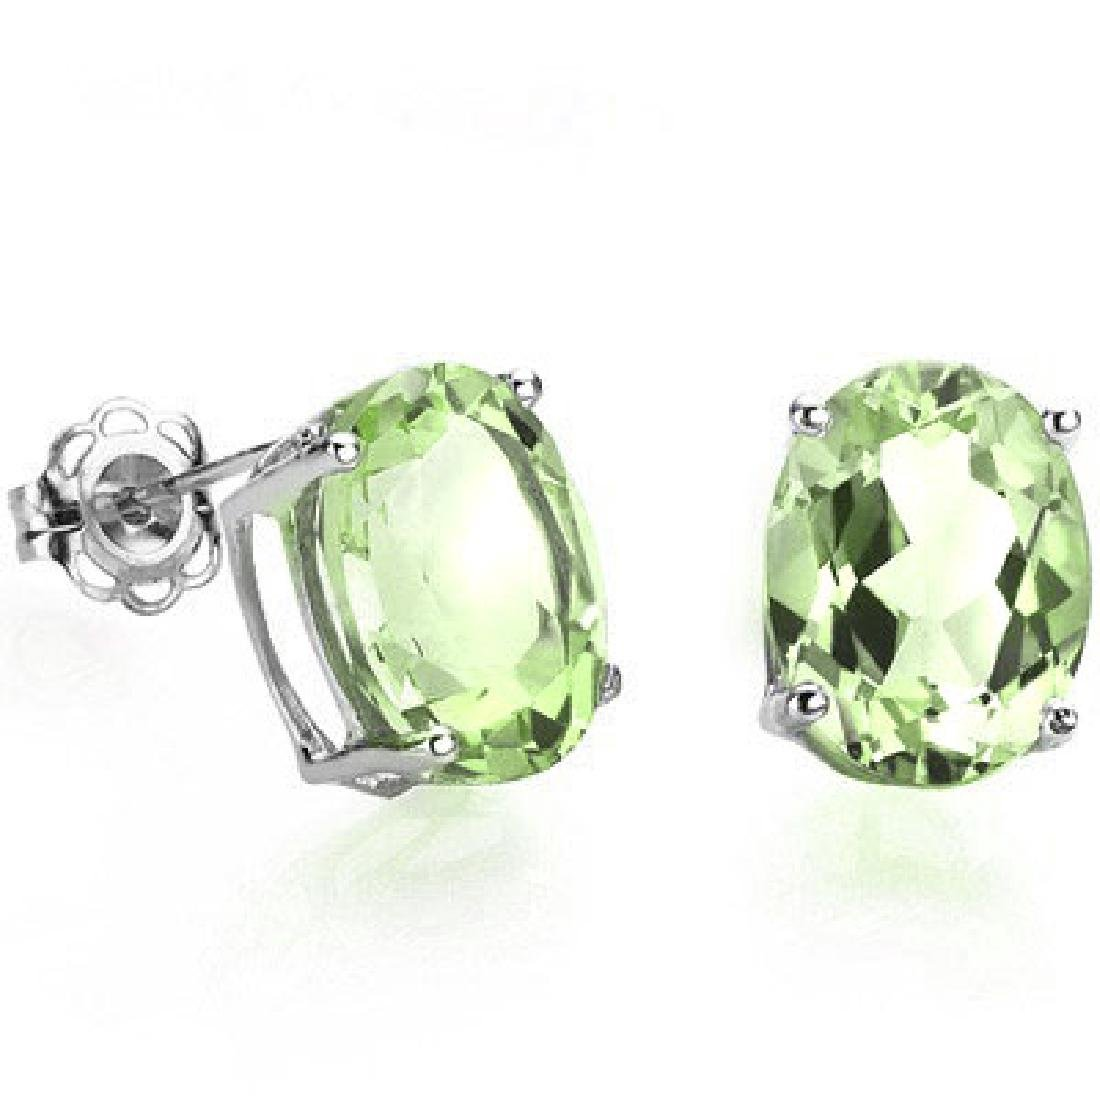 1CT OVAL GREEN AMETHSYT SOLITAIRE EARRINGS